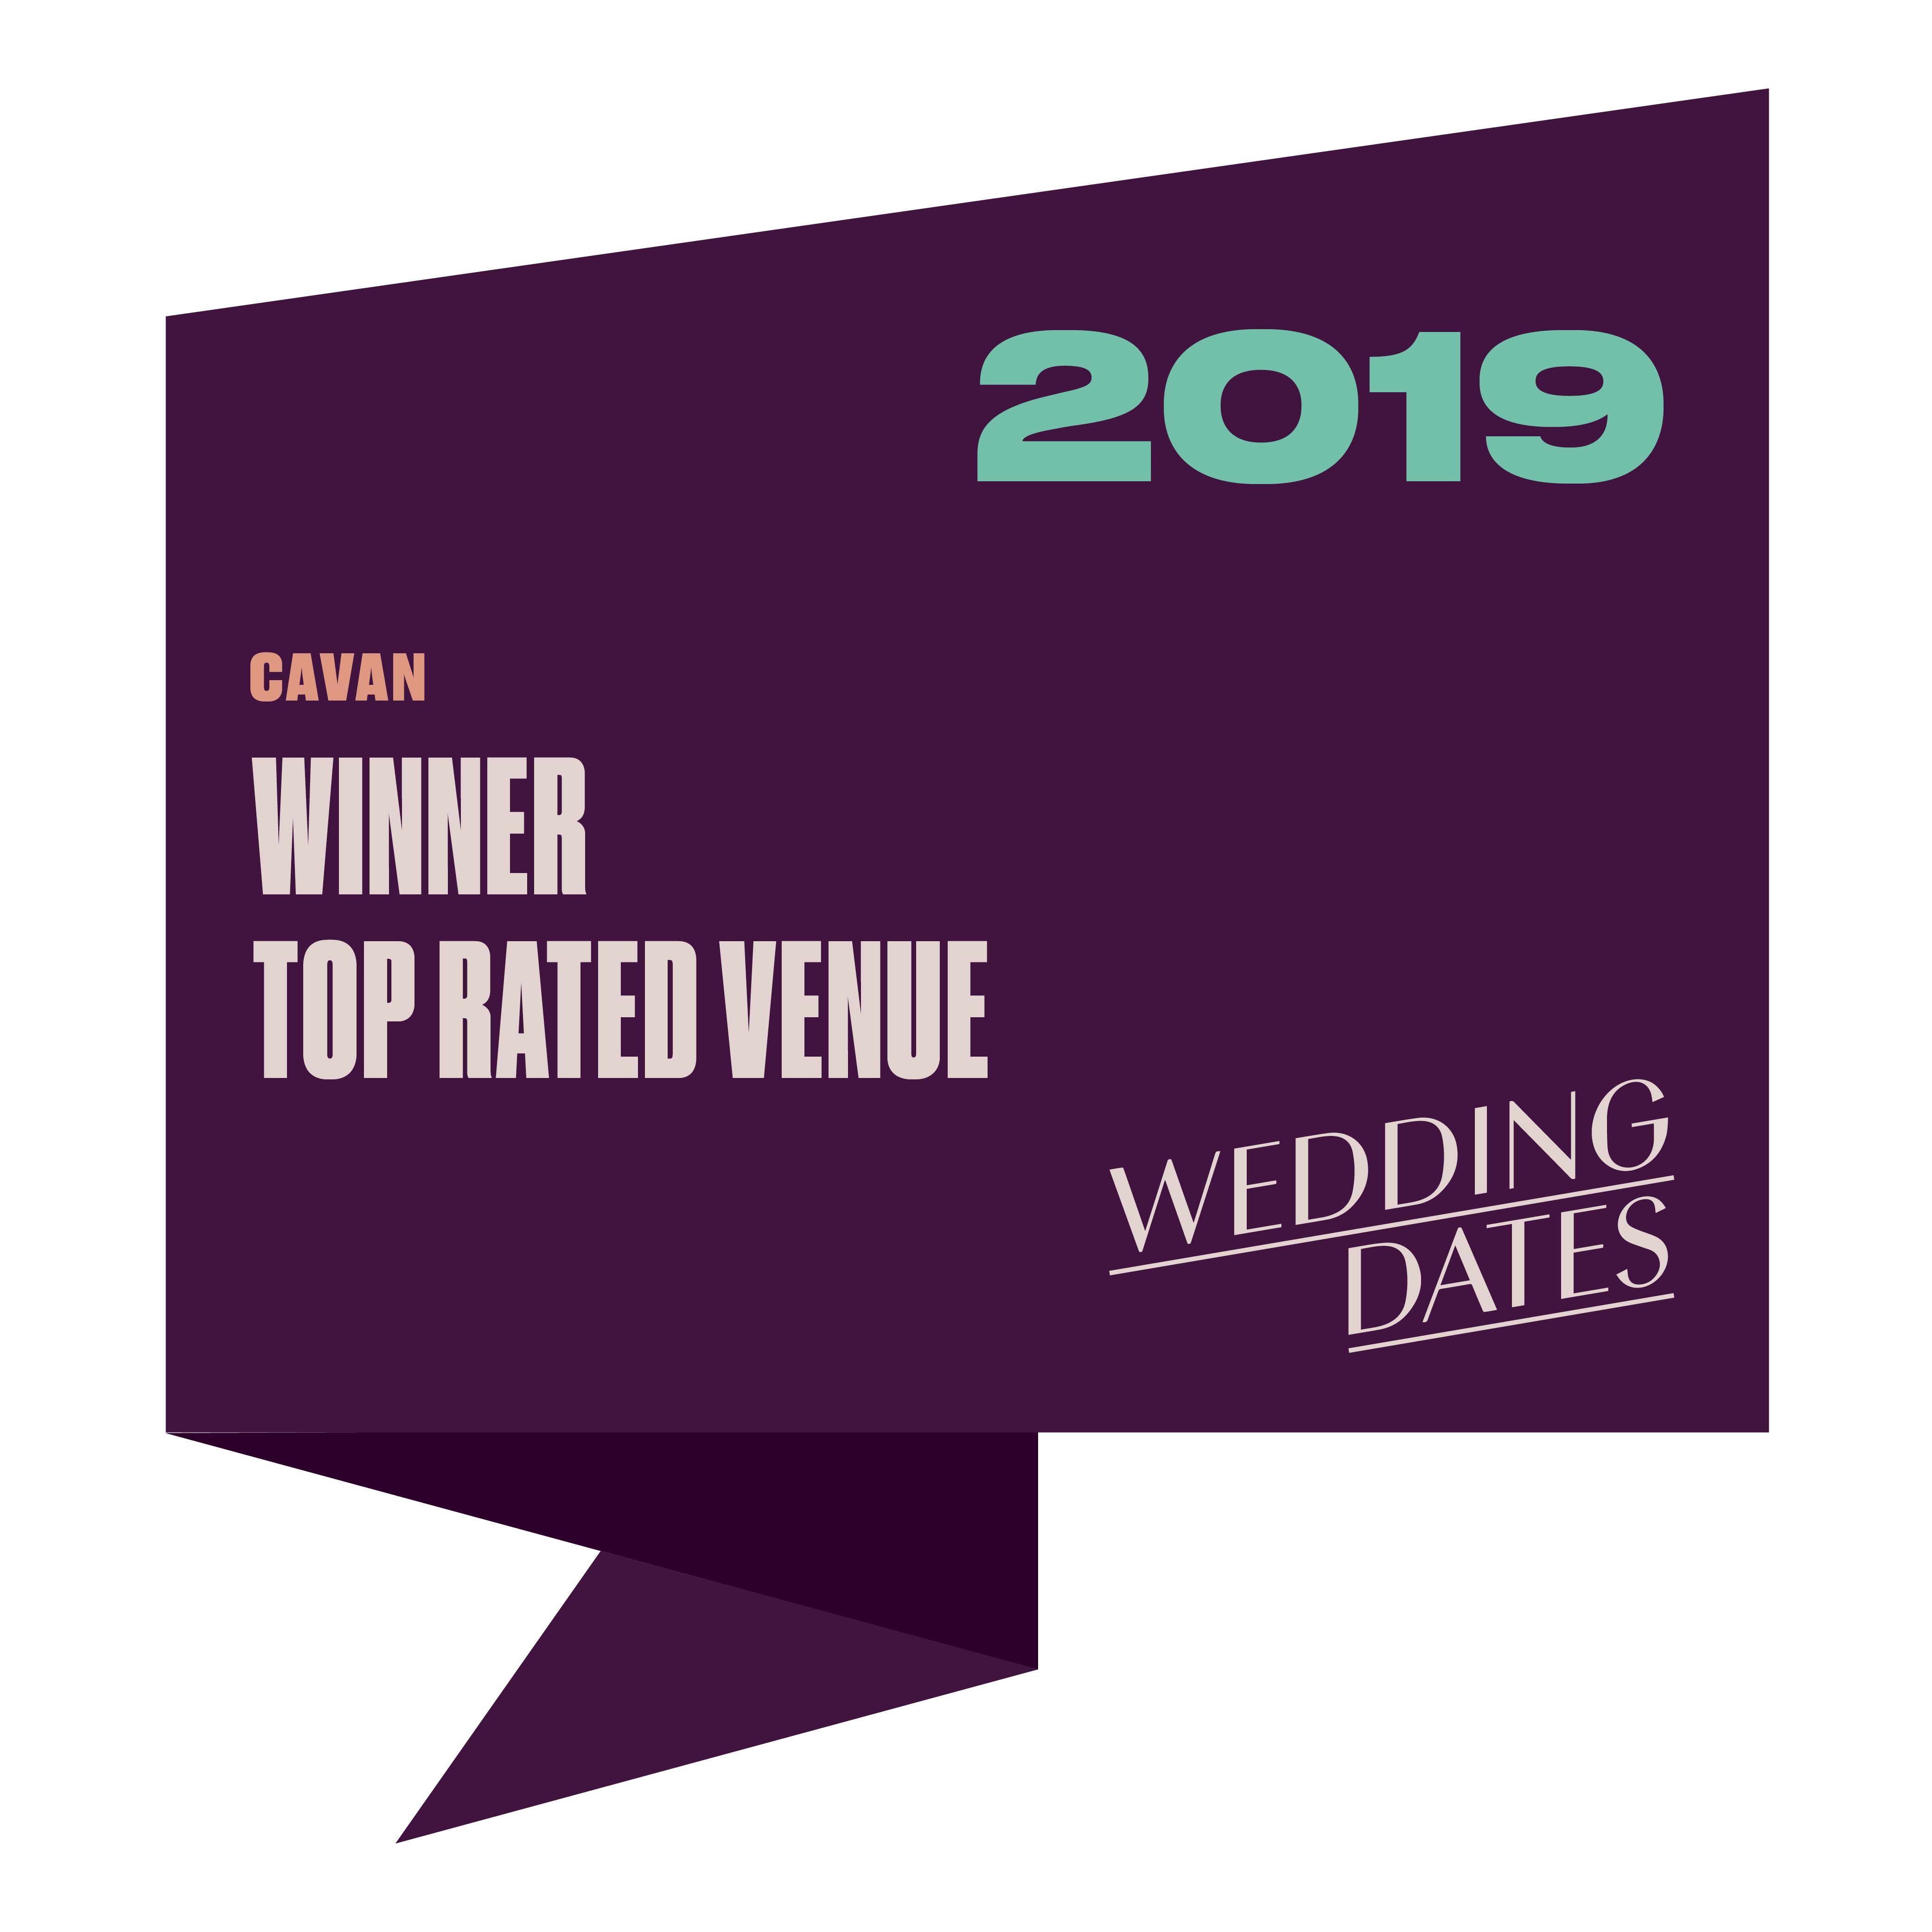 Top Rated Wedding Venues in Cavan 2019